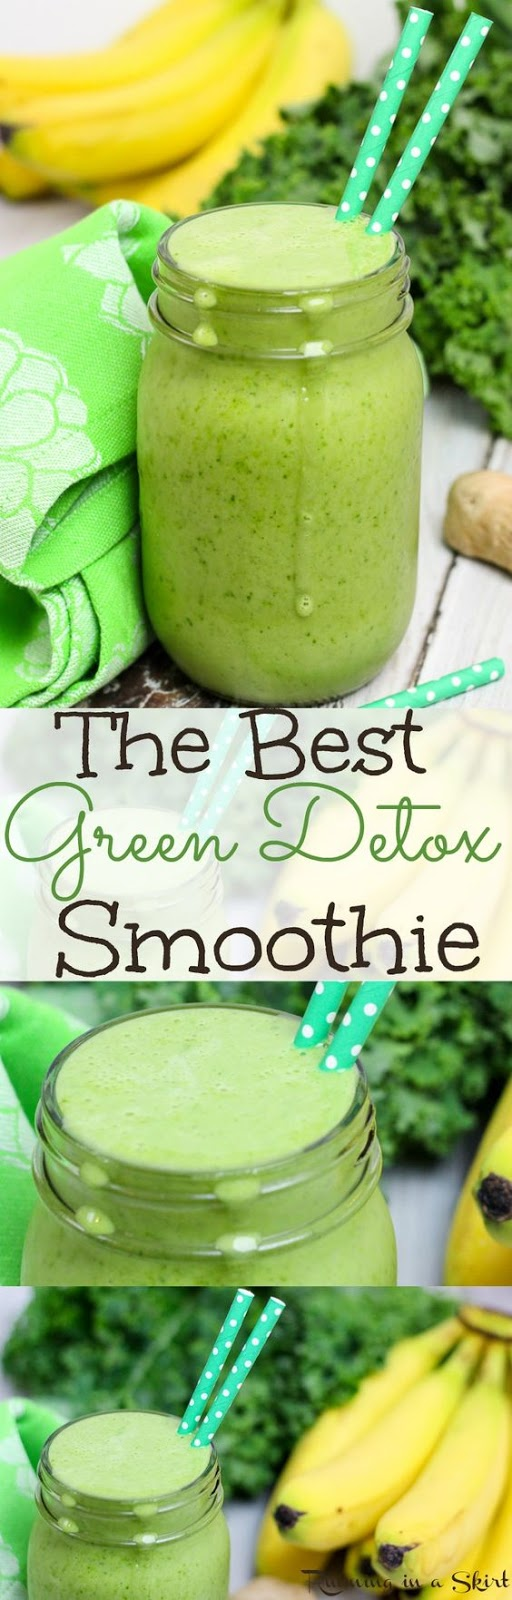 Kale, Pineapple and Ginger Detox Green Smoothie